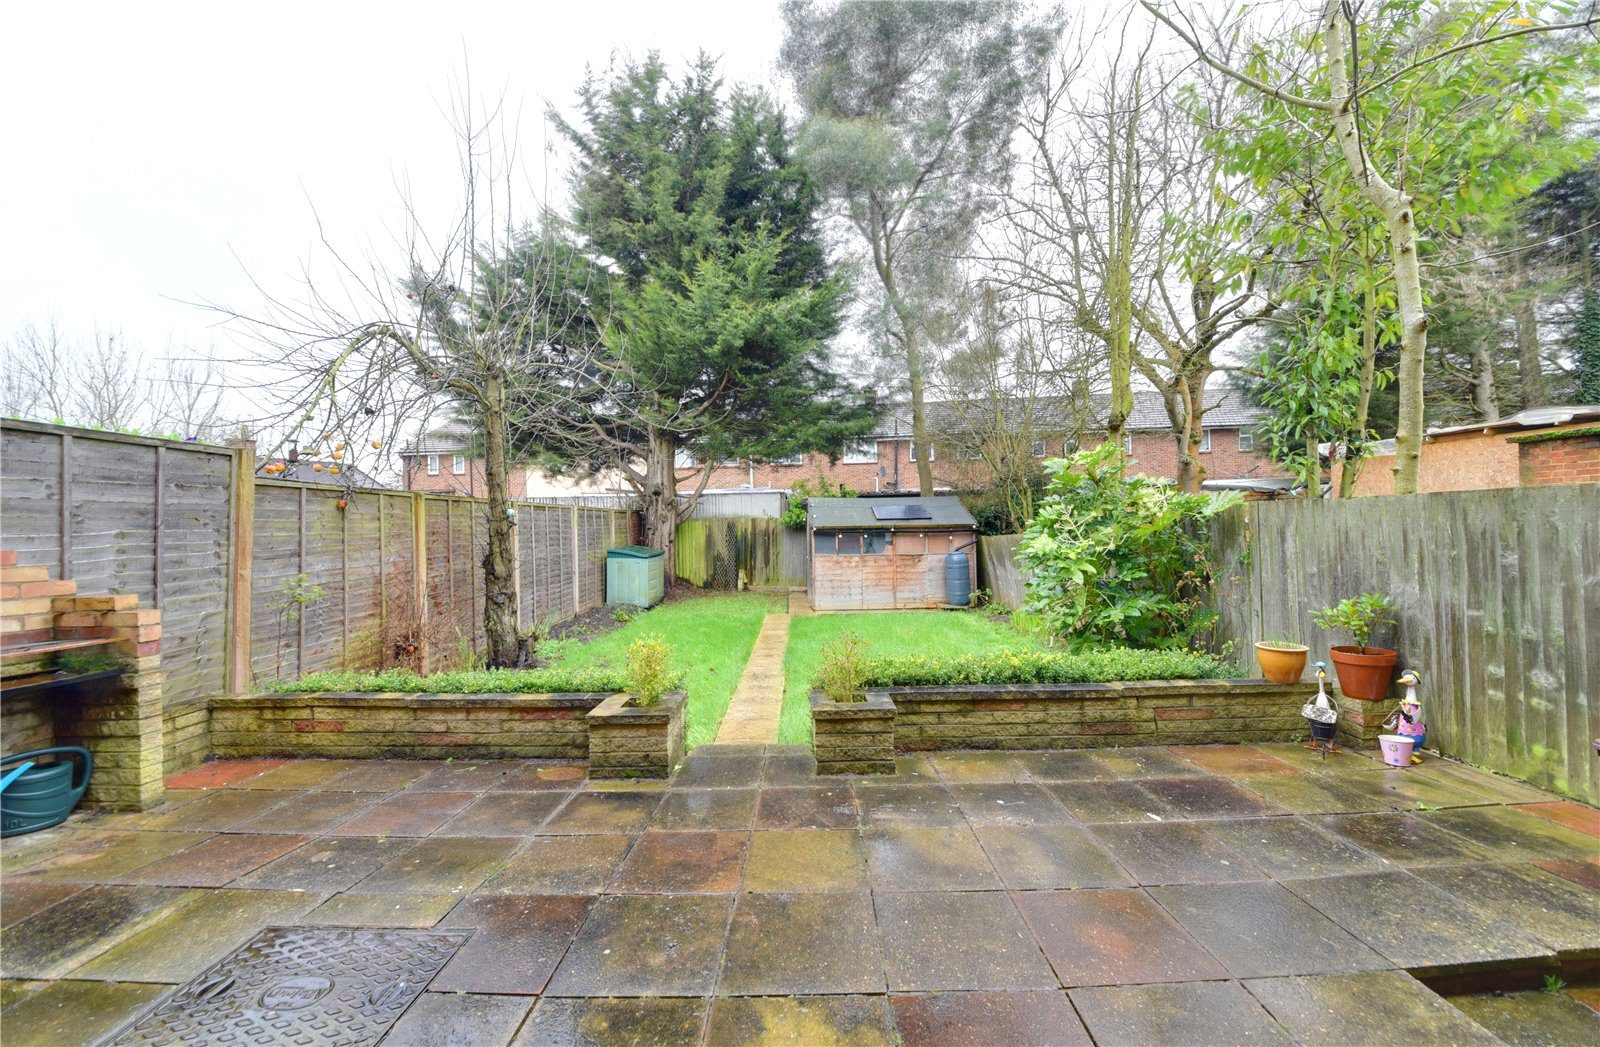 3 bed house for sale in Edgware, HA8 8XT 3